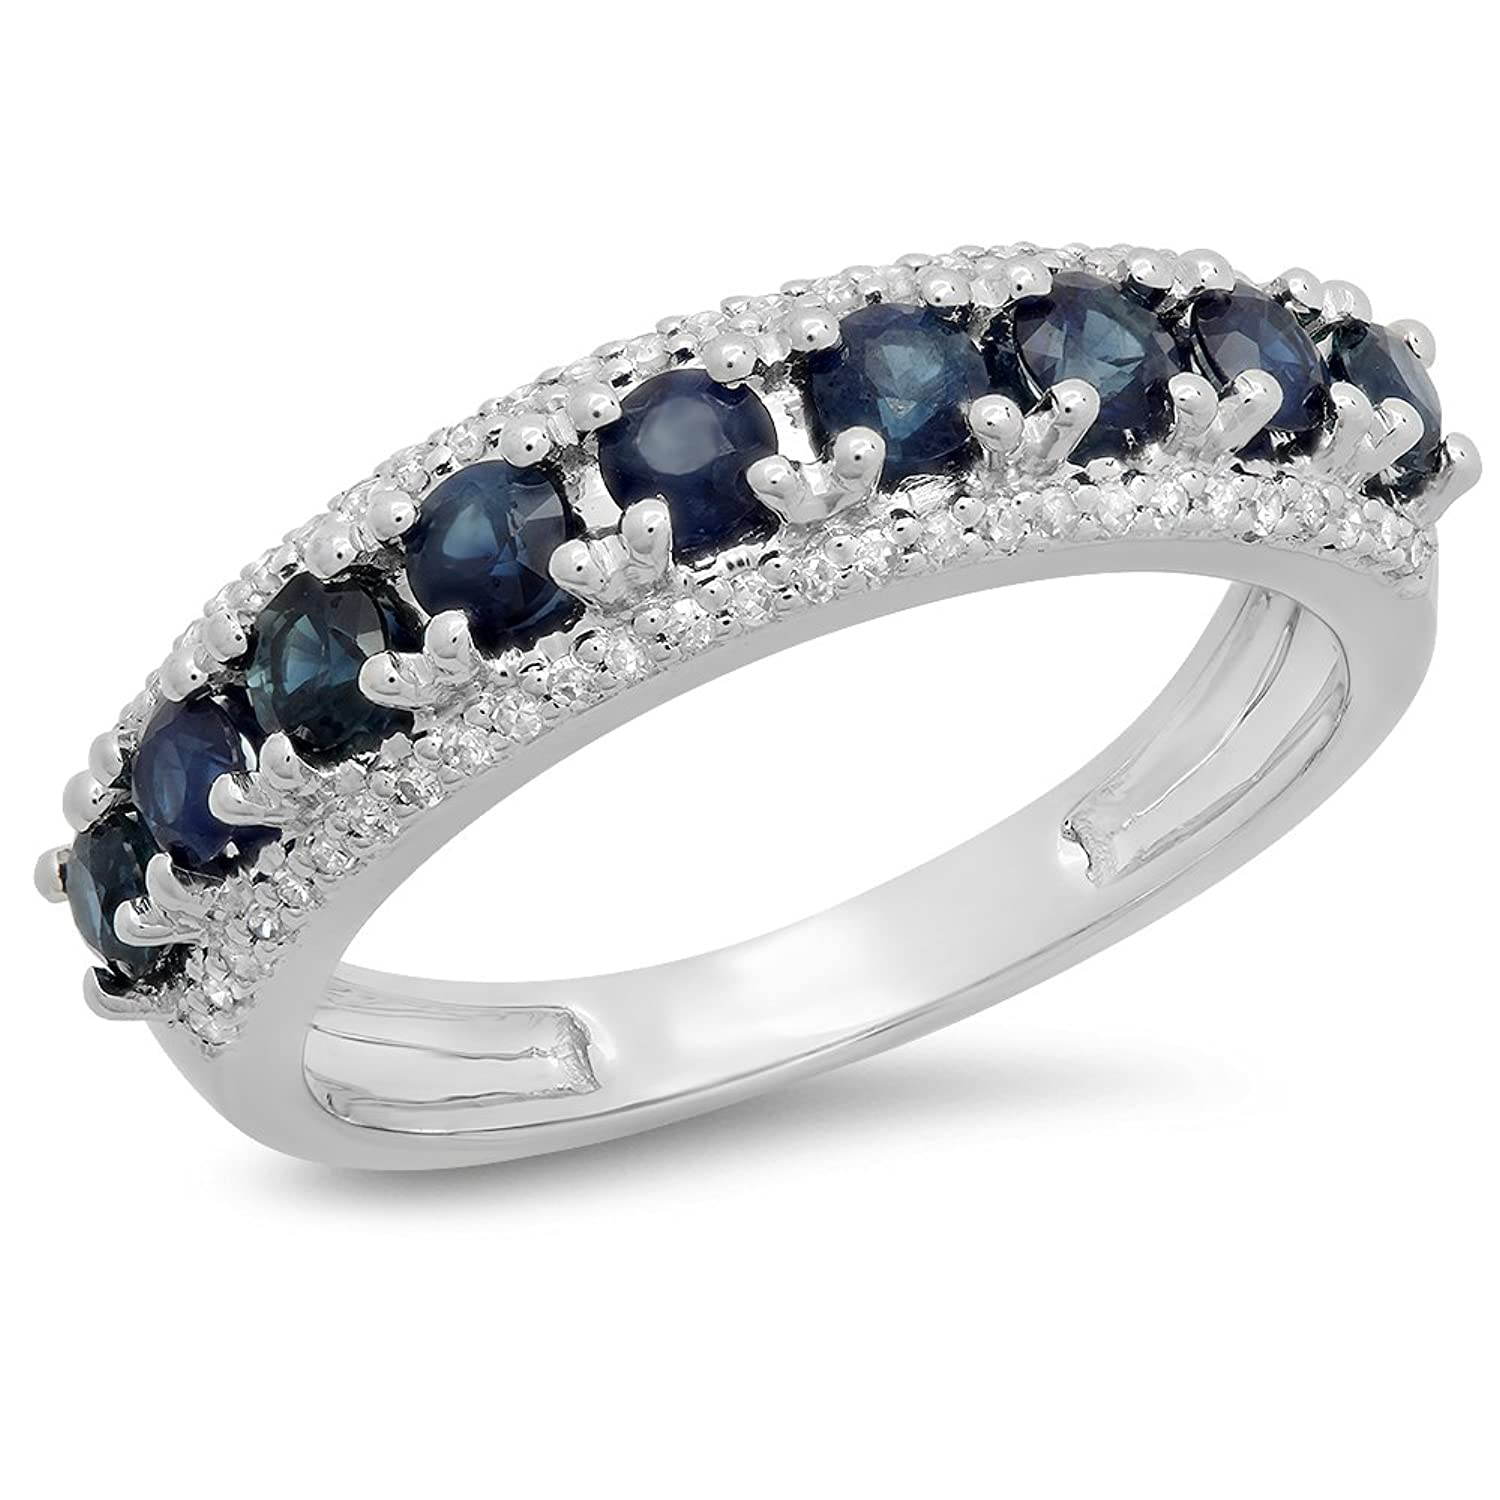 14K Gold Round Blue Sapphire & White Diamond Ladies Anniversary Wedding Band Stackable Ring